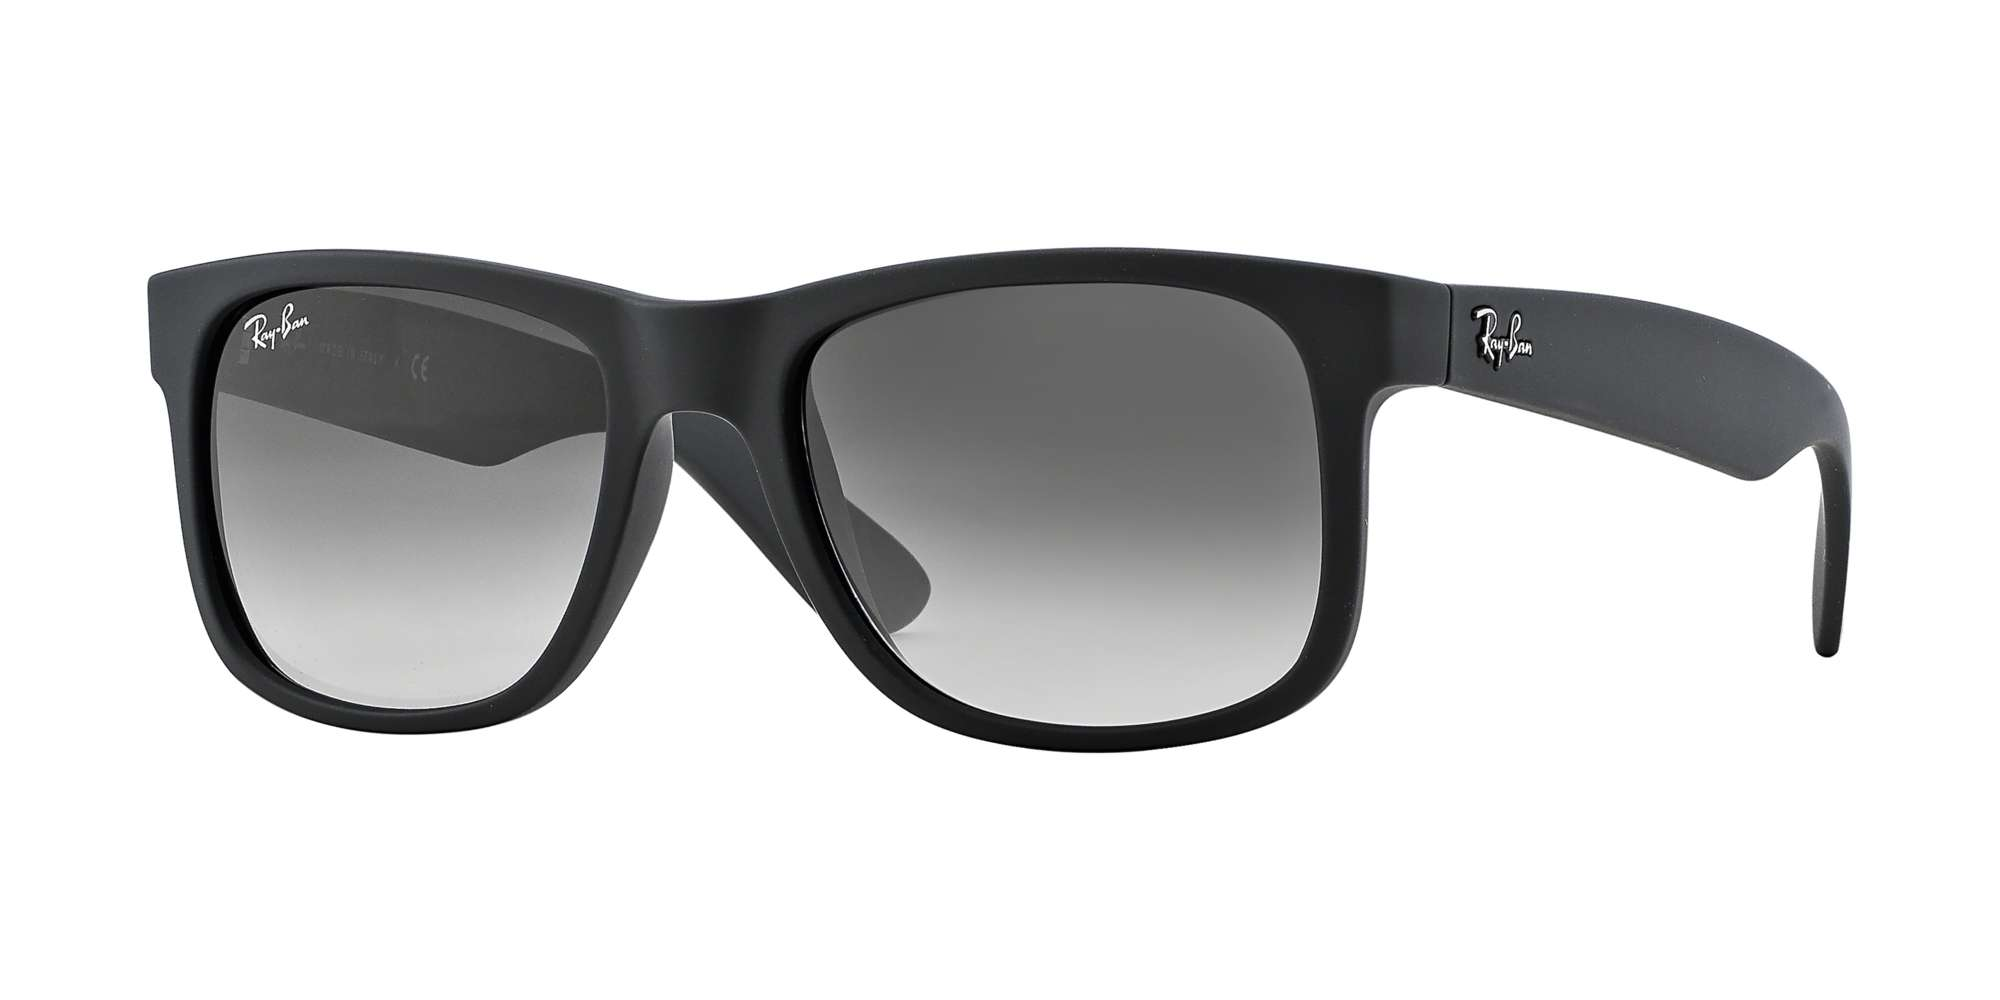 RUBBER BLACK / GREY GRADIENT lenses